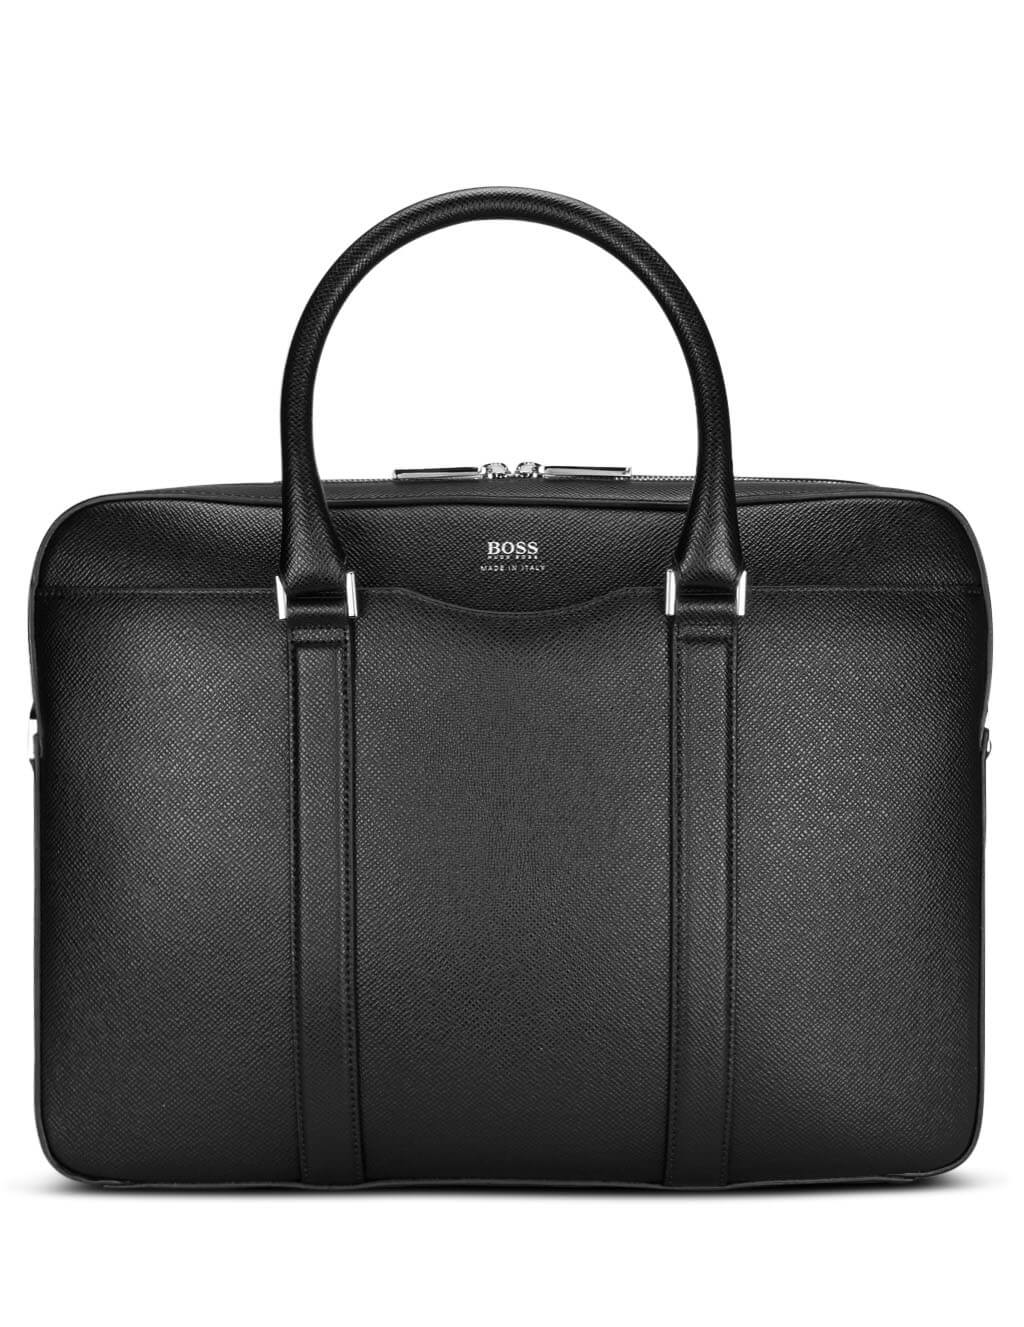 BOSS Men's Black Leather Signature Collection Bag 50390902 001